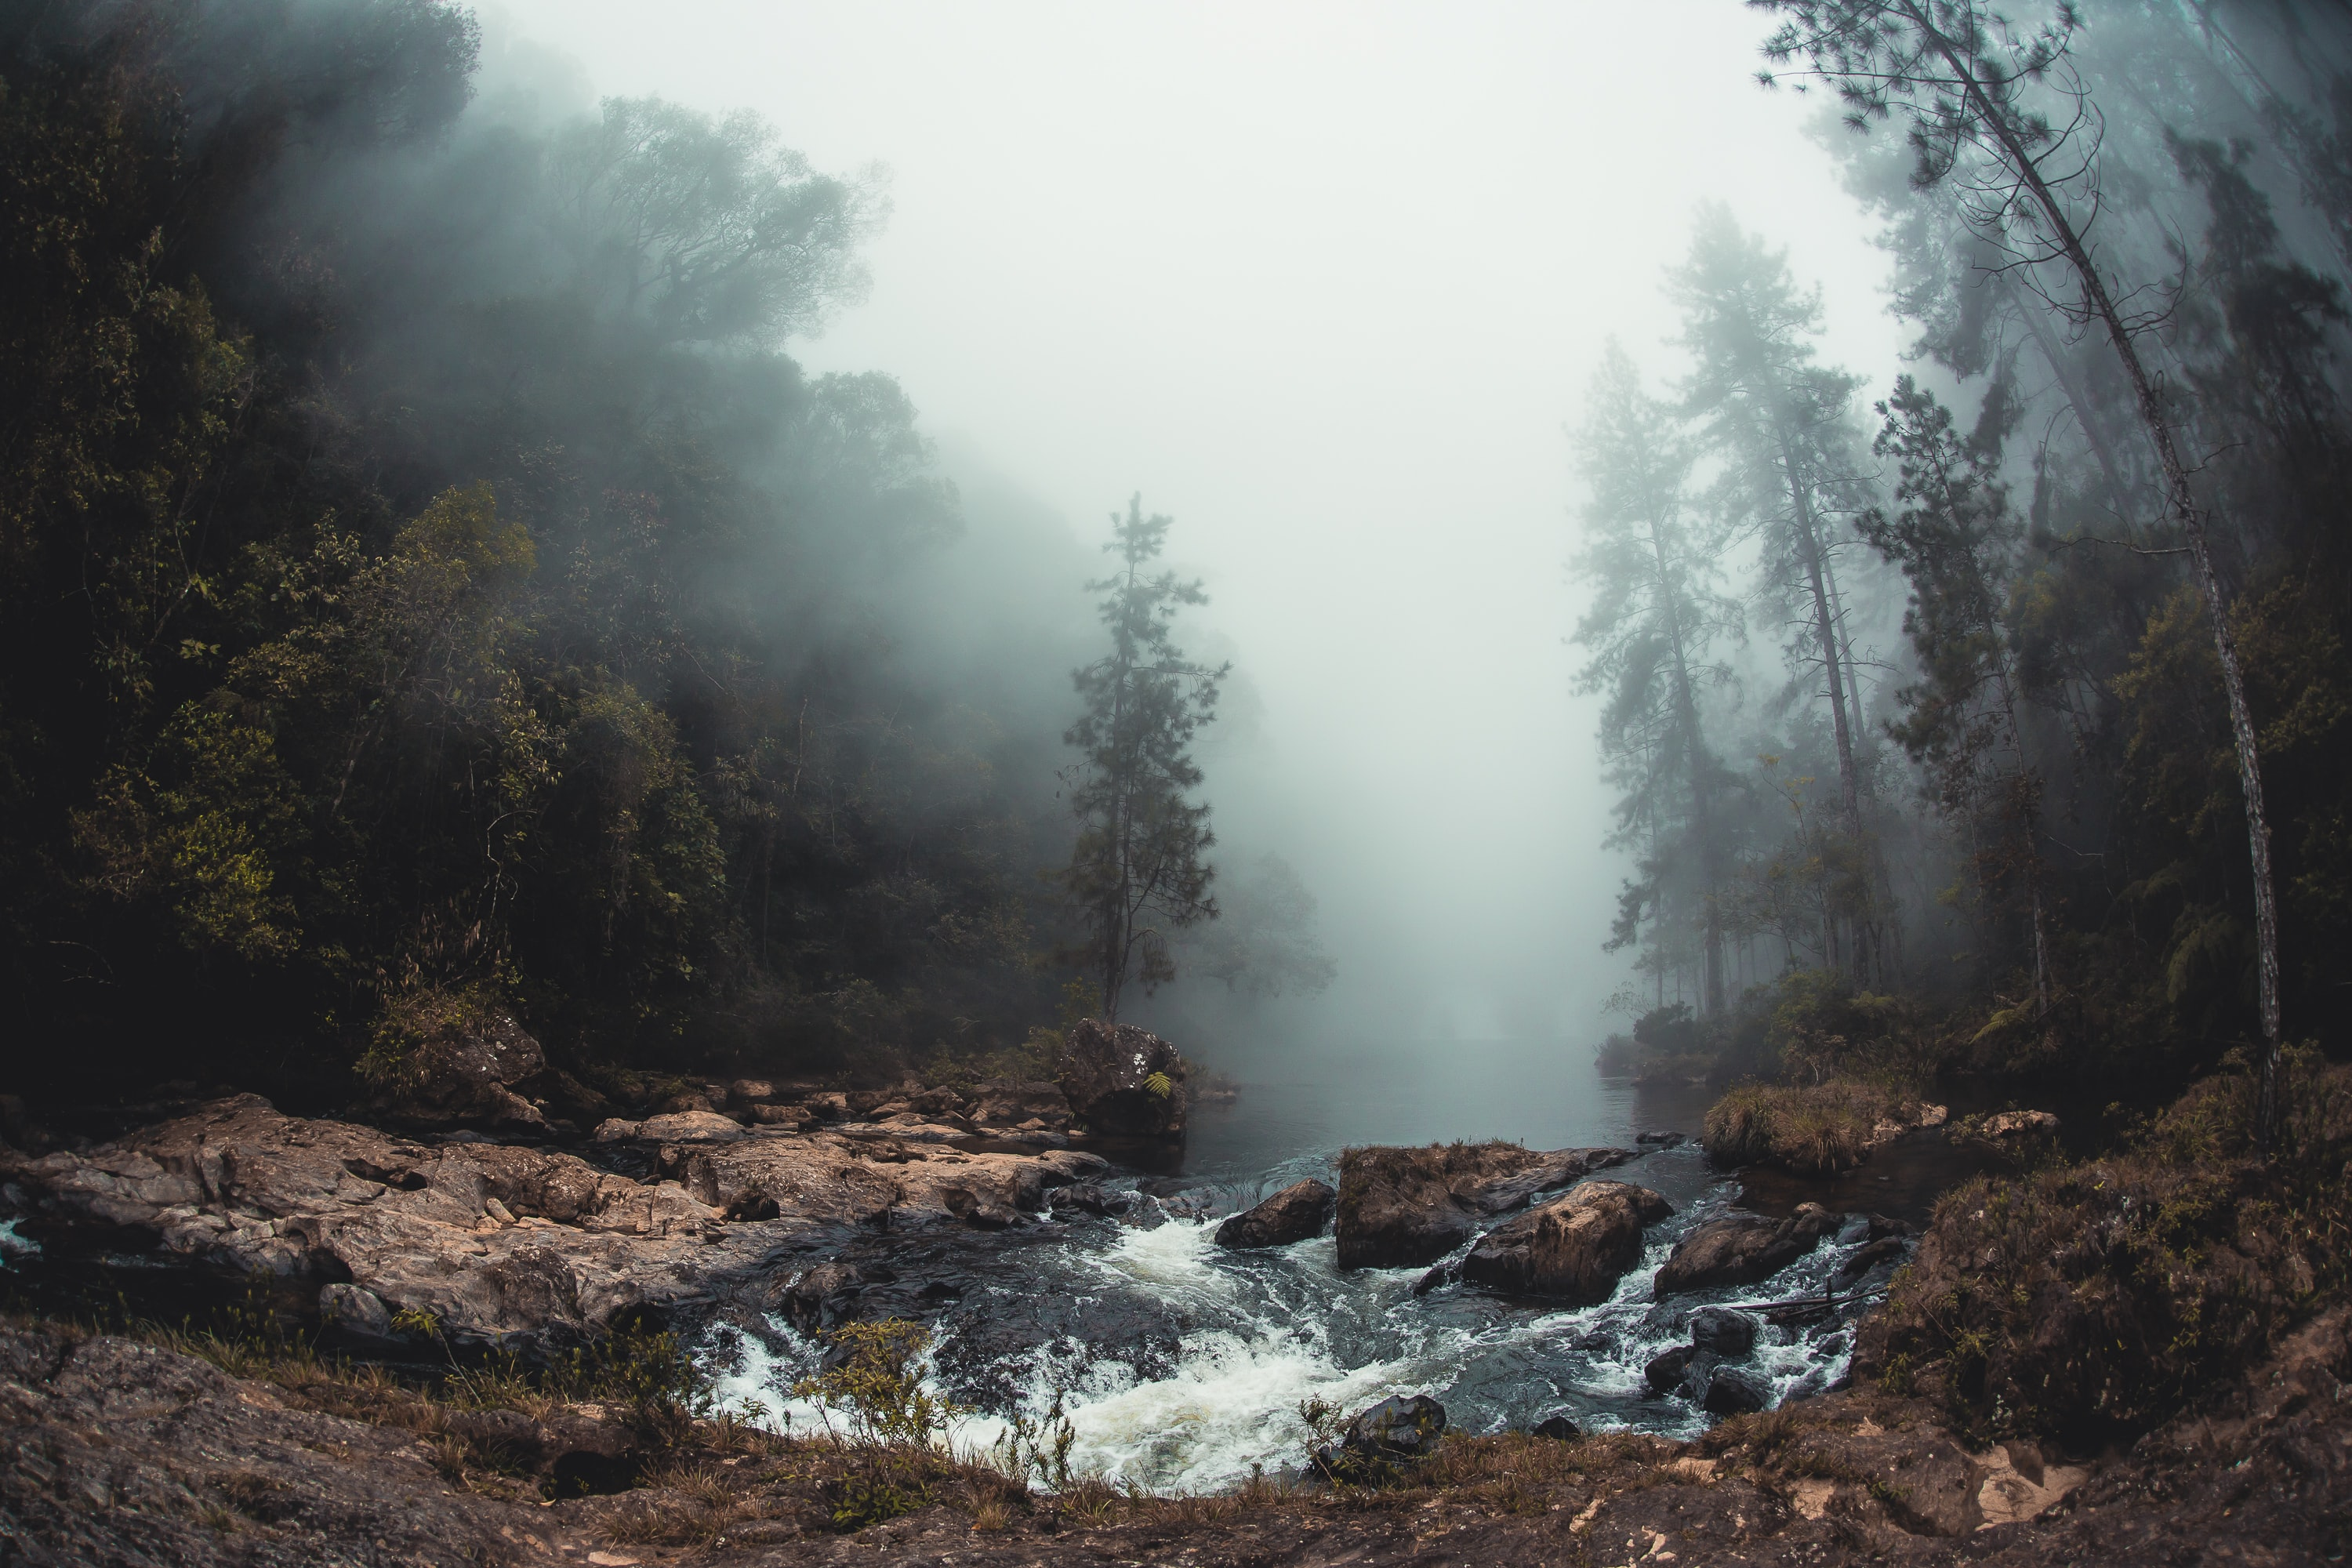 landscape photo of river between trees covered with fog